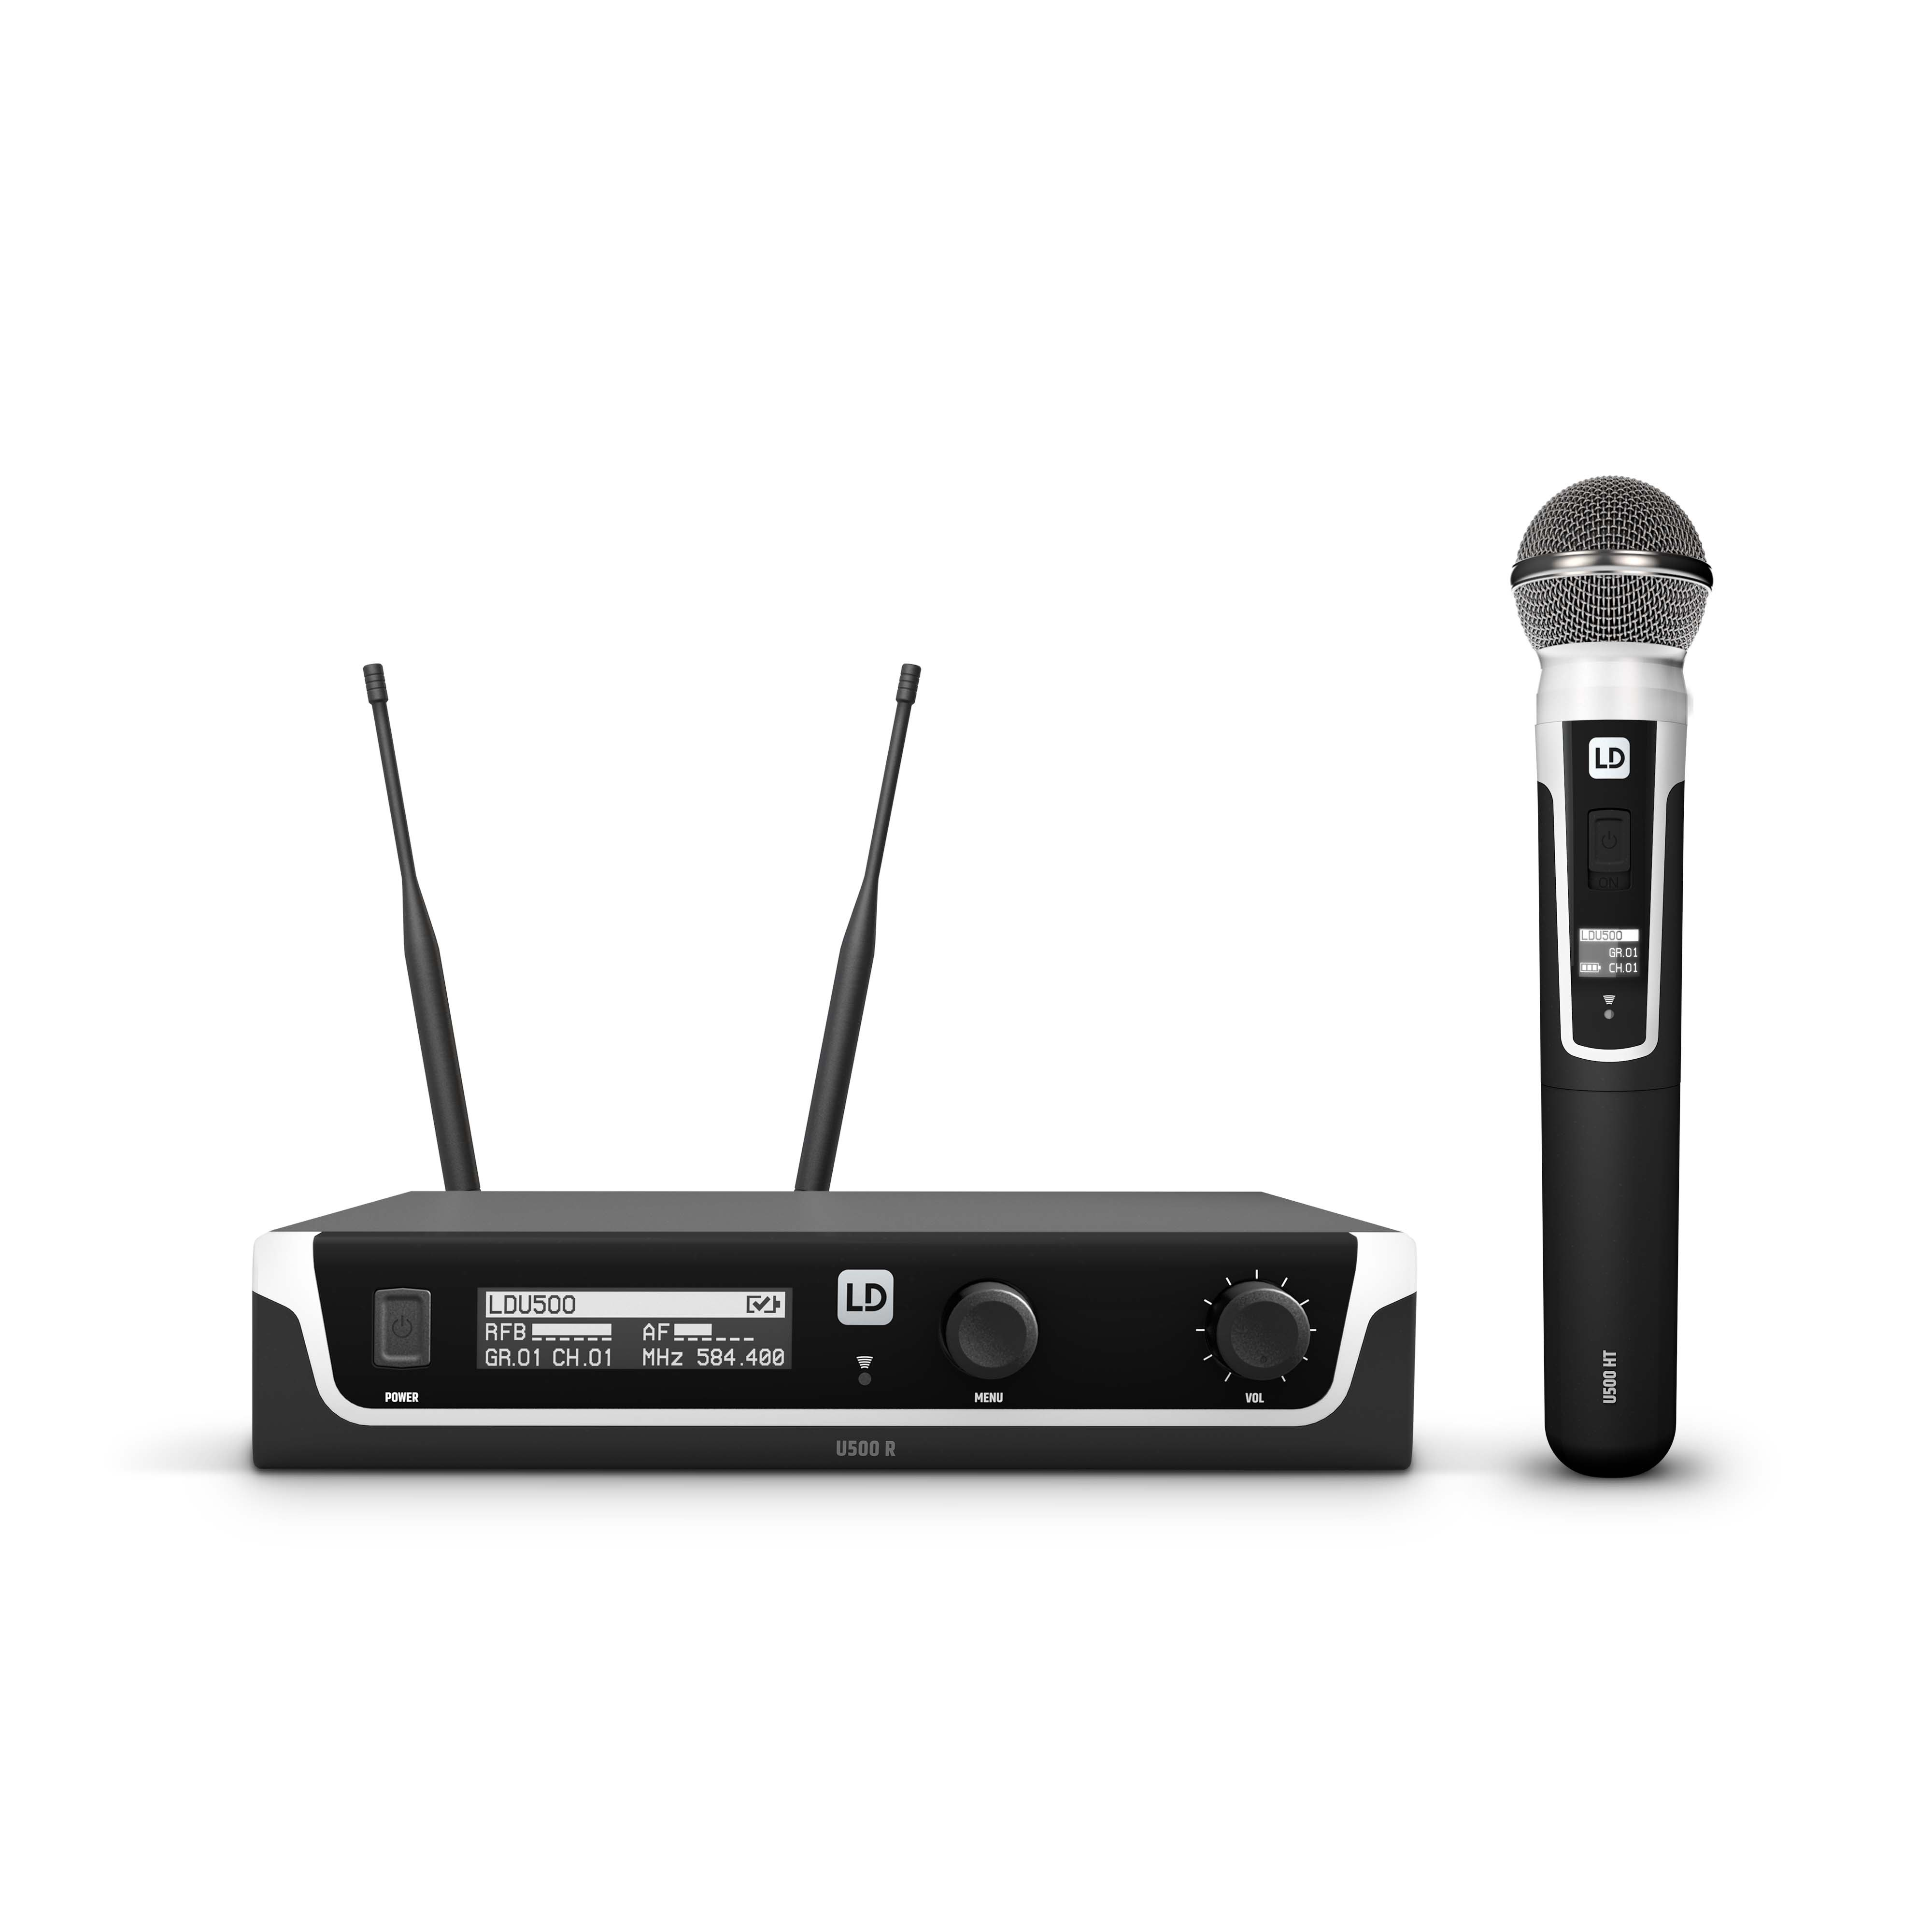 U508 HHD Wireless Microphone System with Dynamic Handheld Microphone